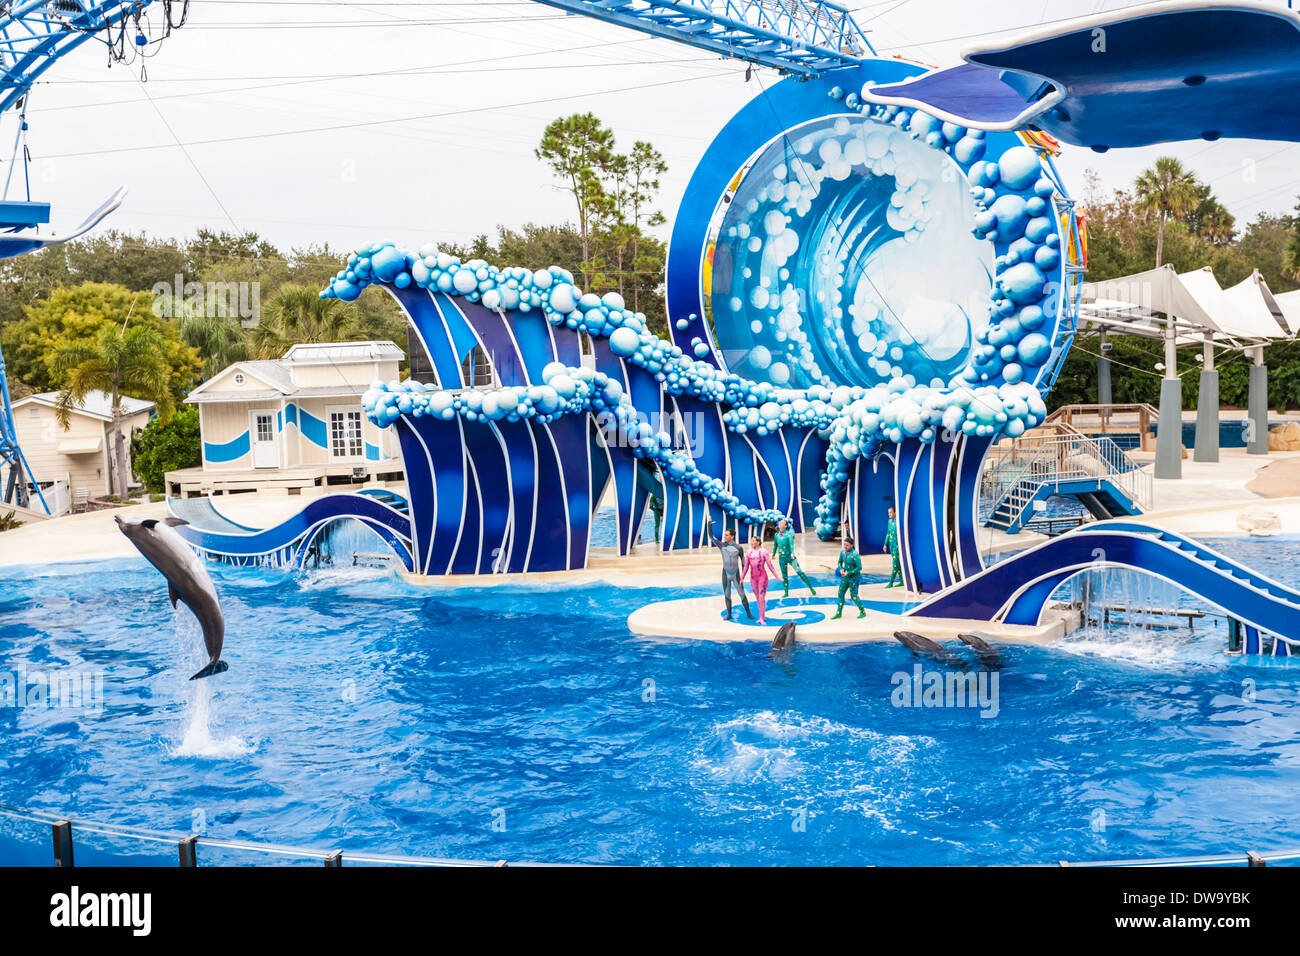 Animal trainers performing with dolphins at the Blue Horizons show in SeaWorld, Orlando - Stock Image